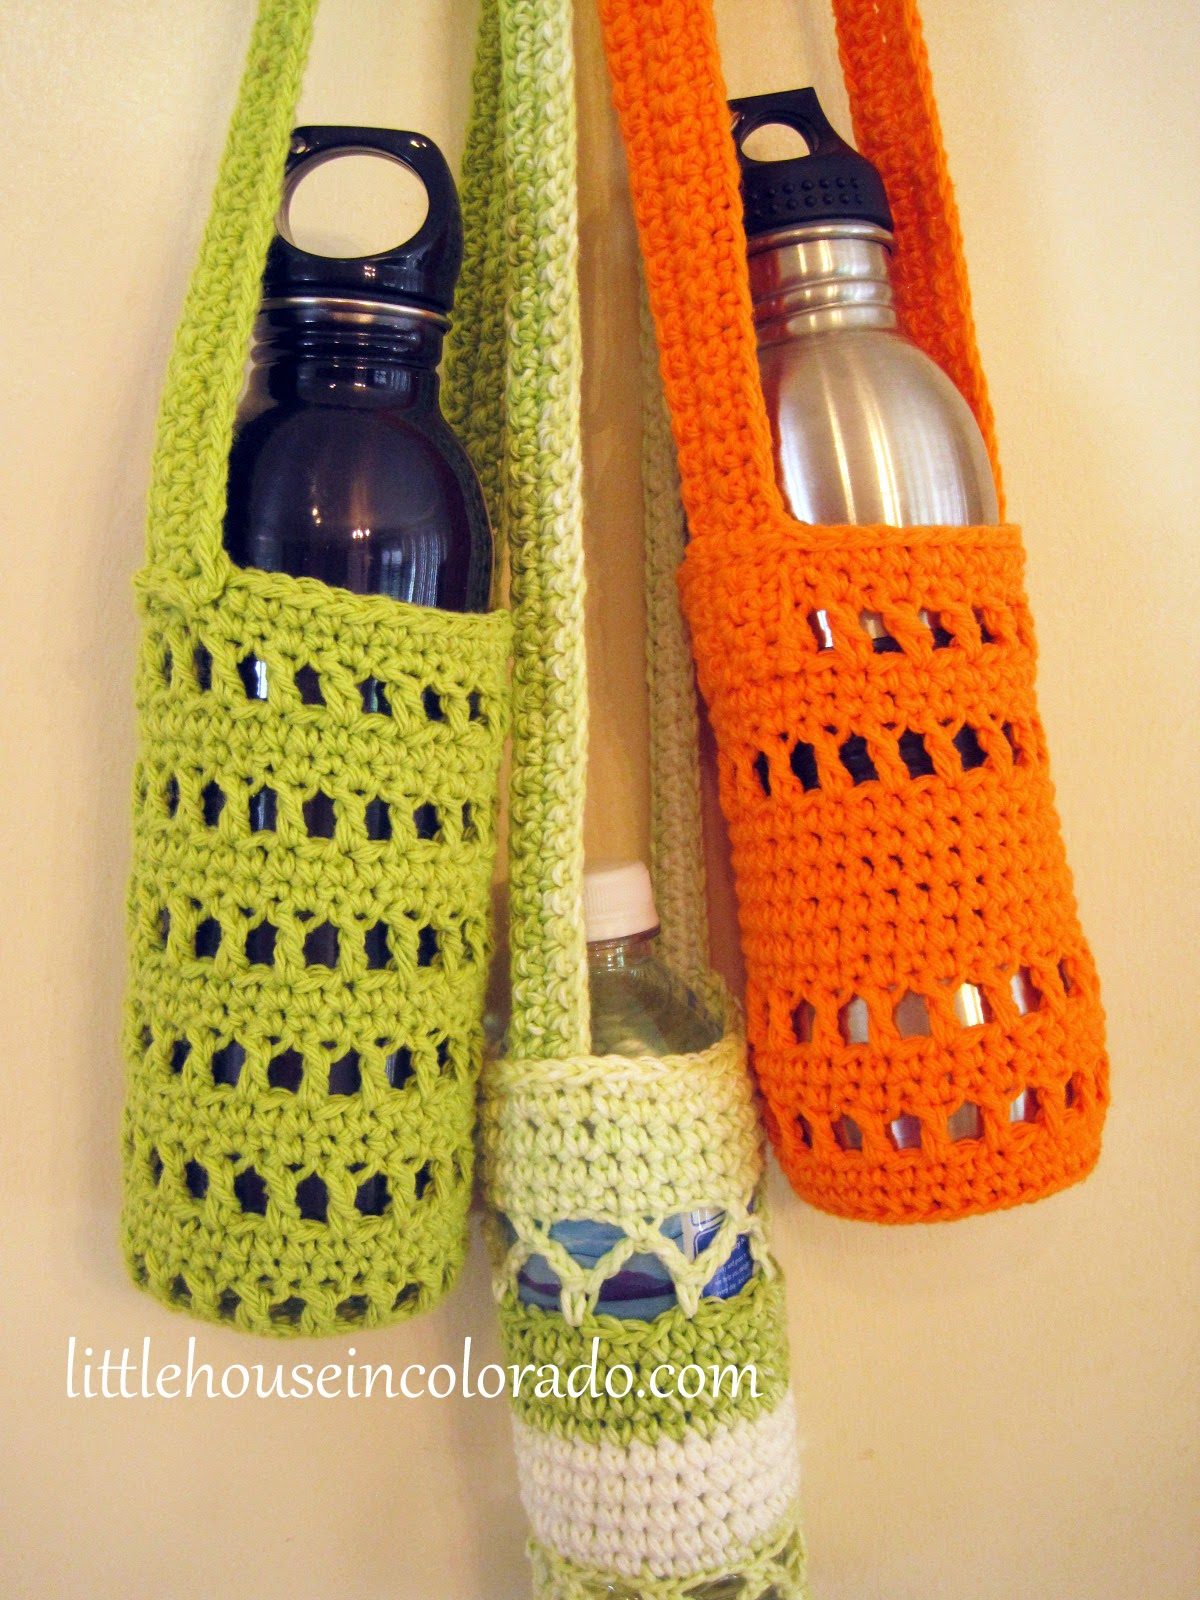 Little House In Colorado: Pattern For Crochet Water Bottle ...